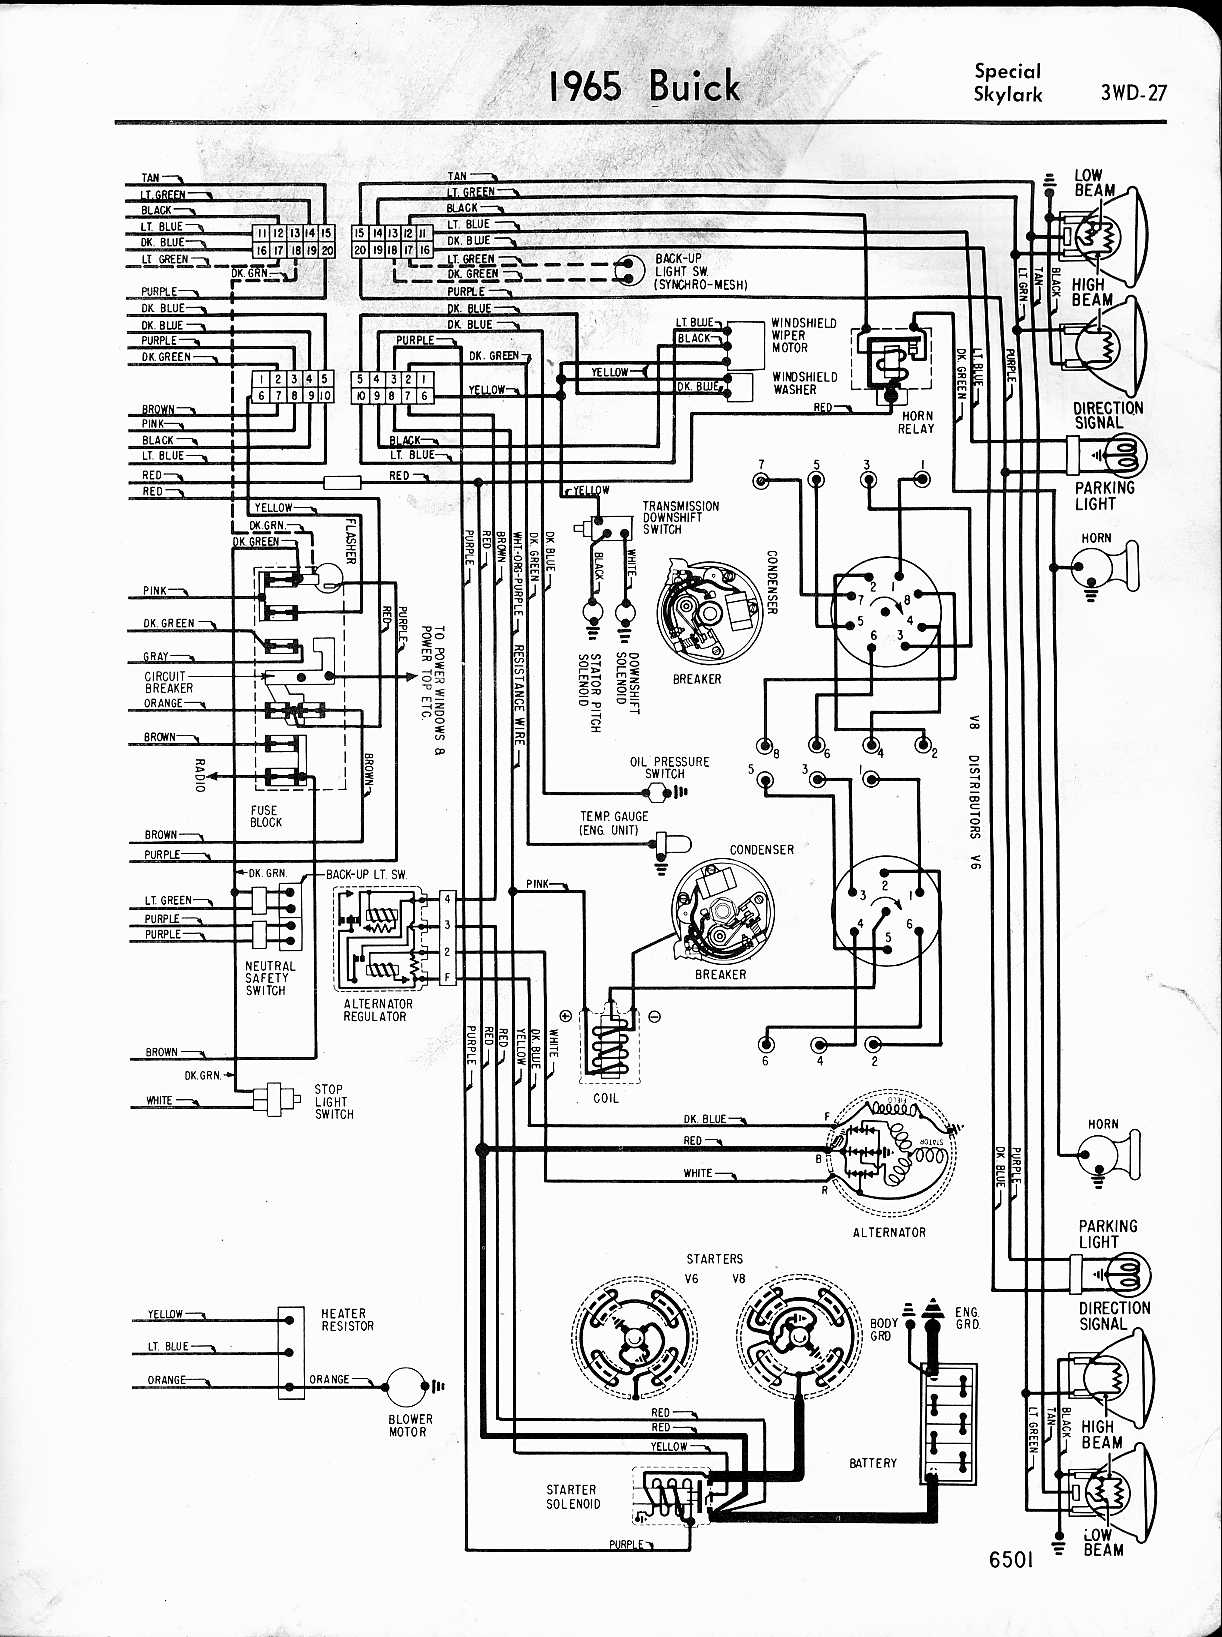 1964 Mustang Tail Light Wiring Diagram Library Starter 1965 Special Skylark Right Half